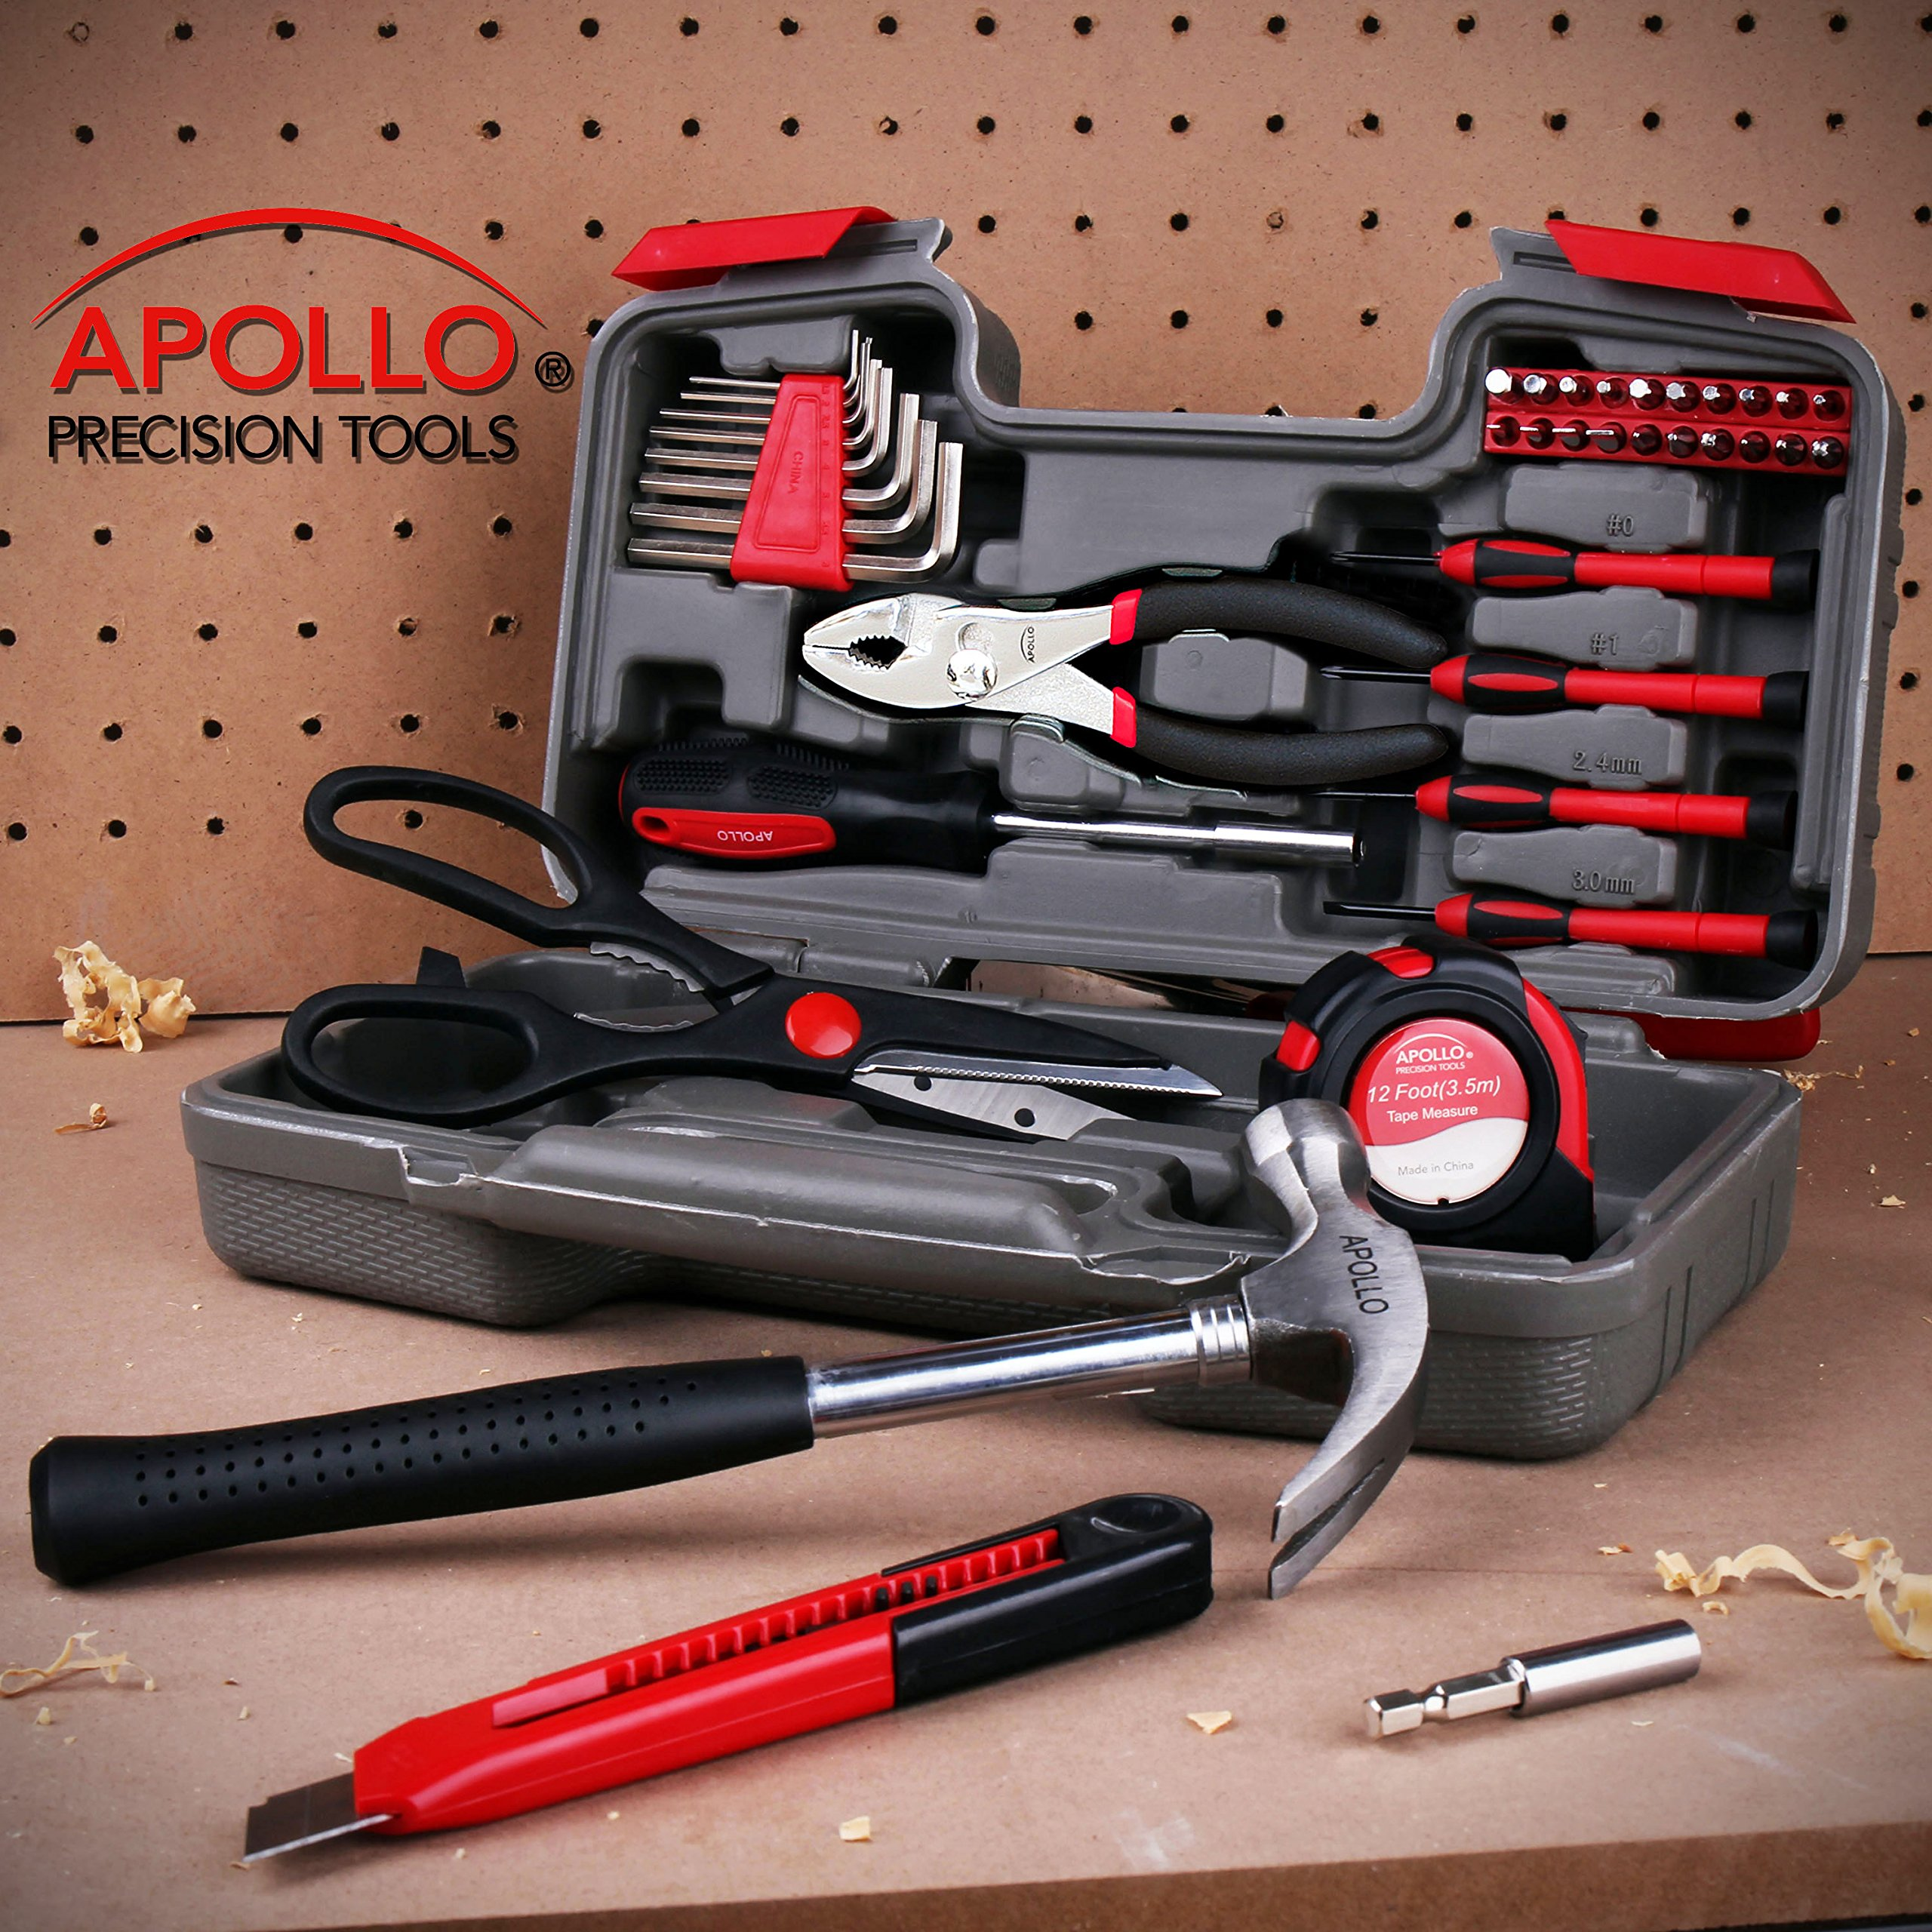 Apollo Tools DT9706 Original 39 Piece General Repair Hand Tool Set with Tool Box Storage Case by Apollo Tools